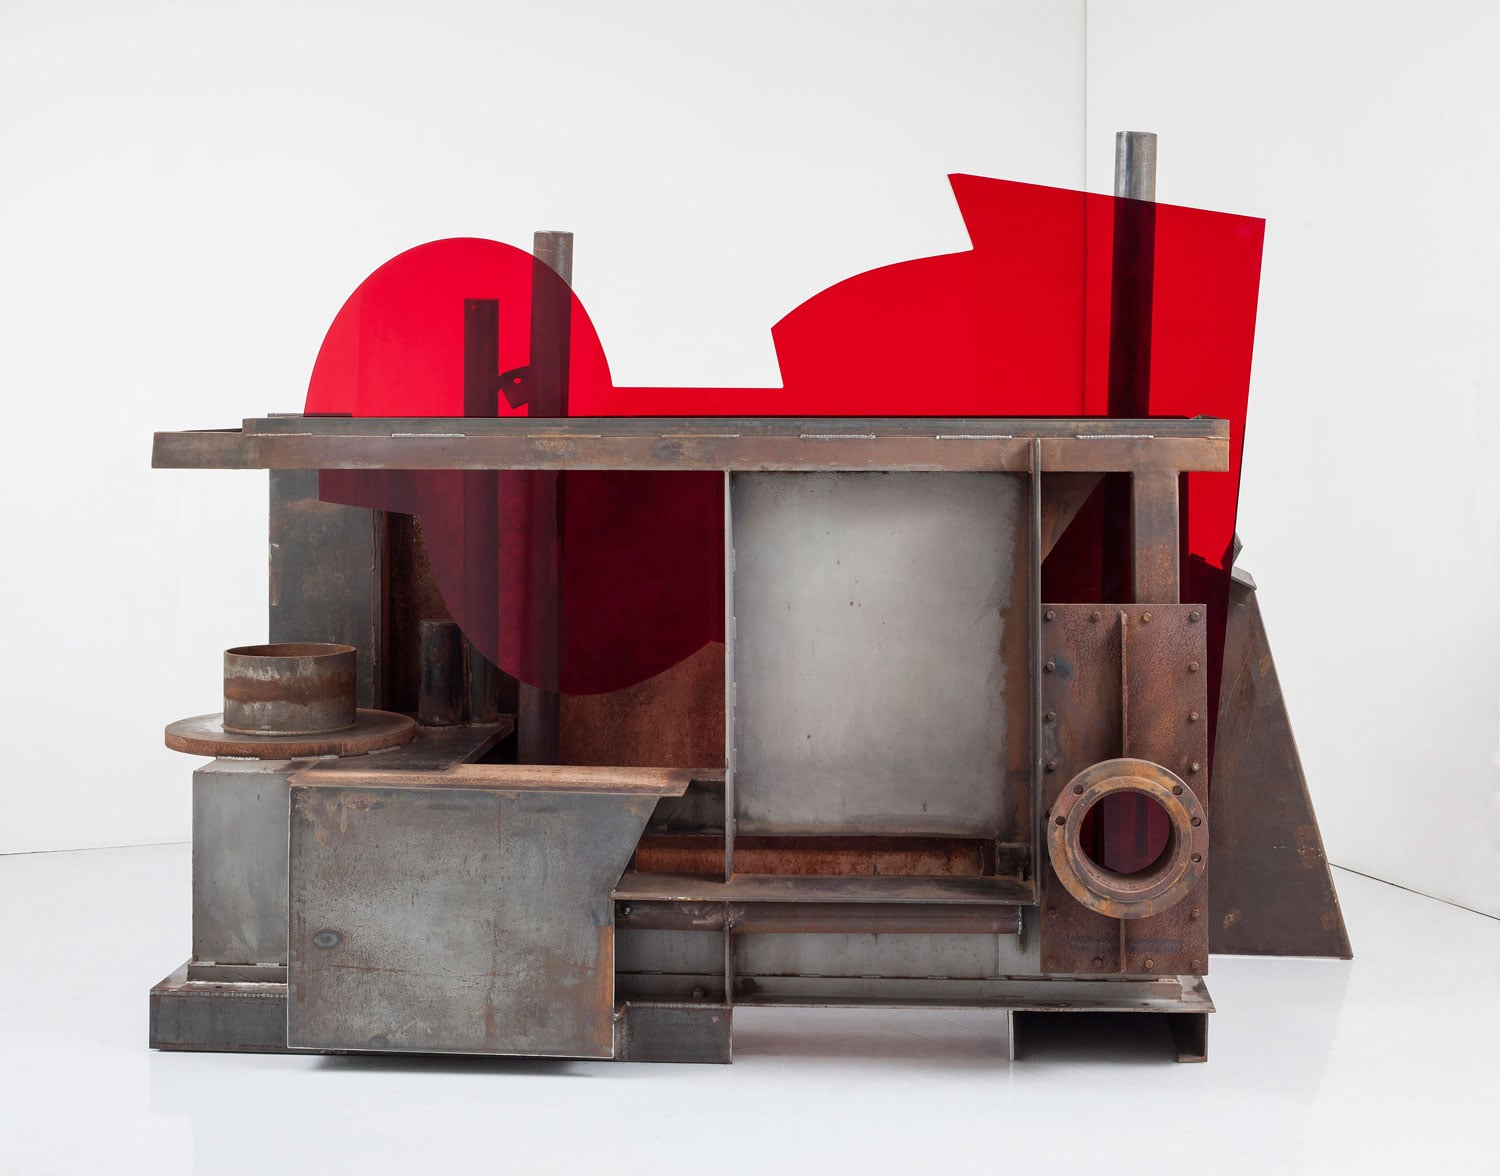 Anthony Caro, End of Time, 2013